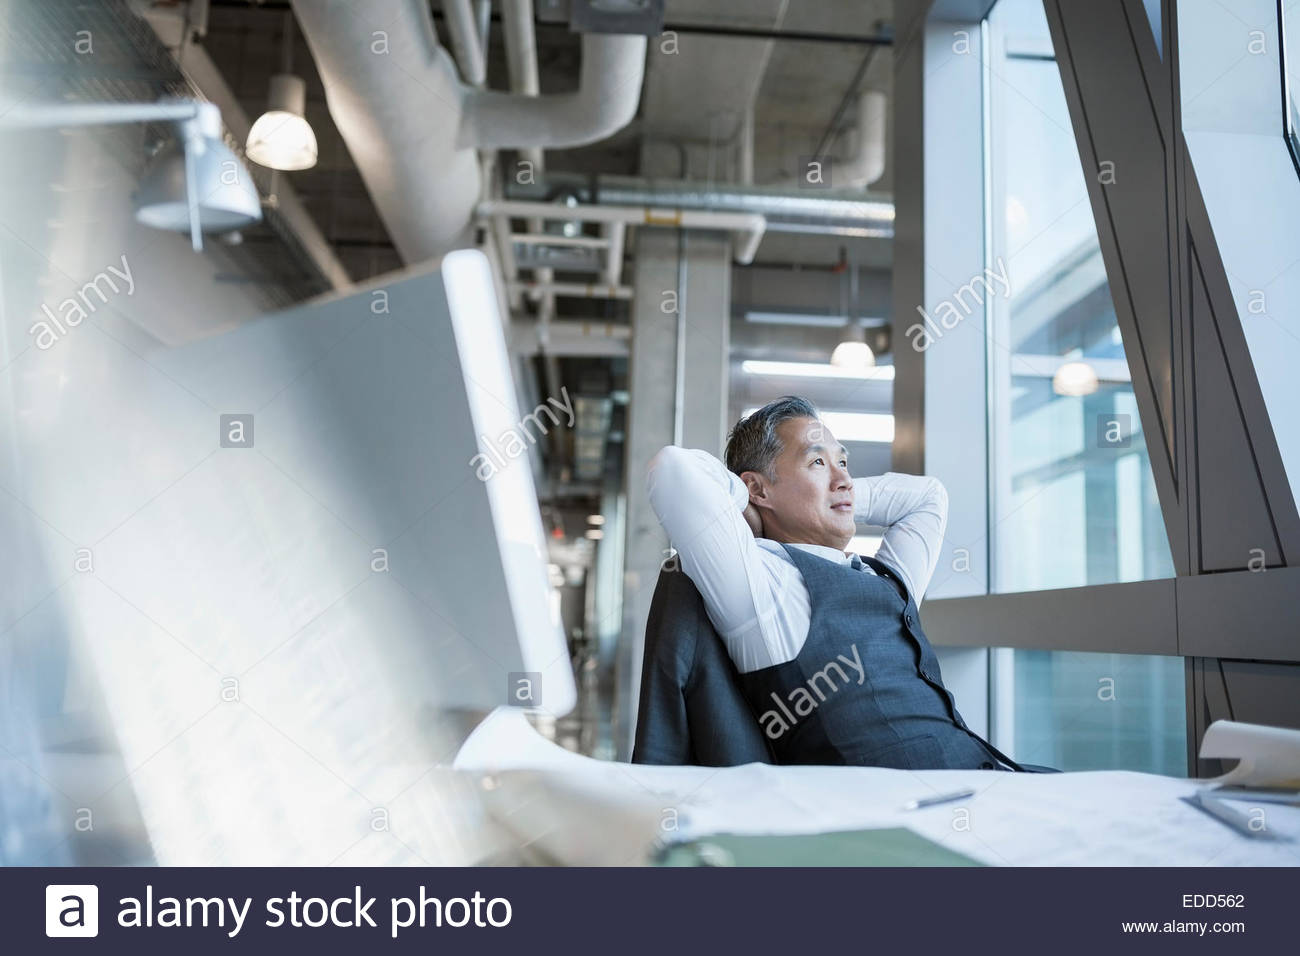 Pensive architect with hands behind head - Stock Image